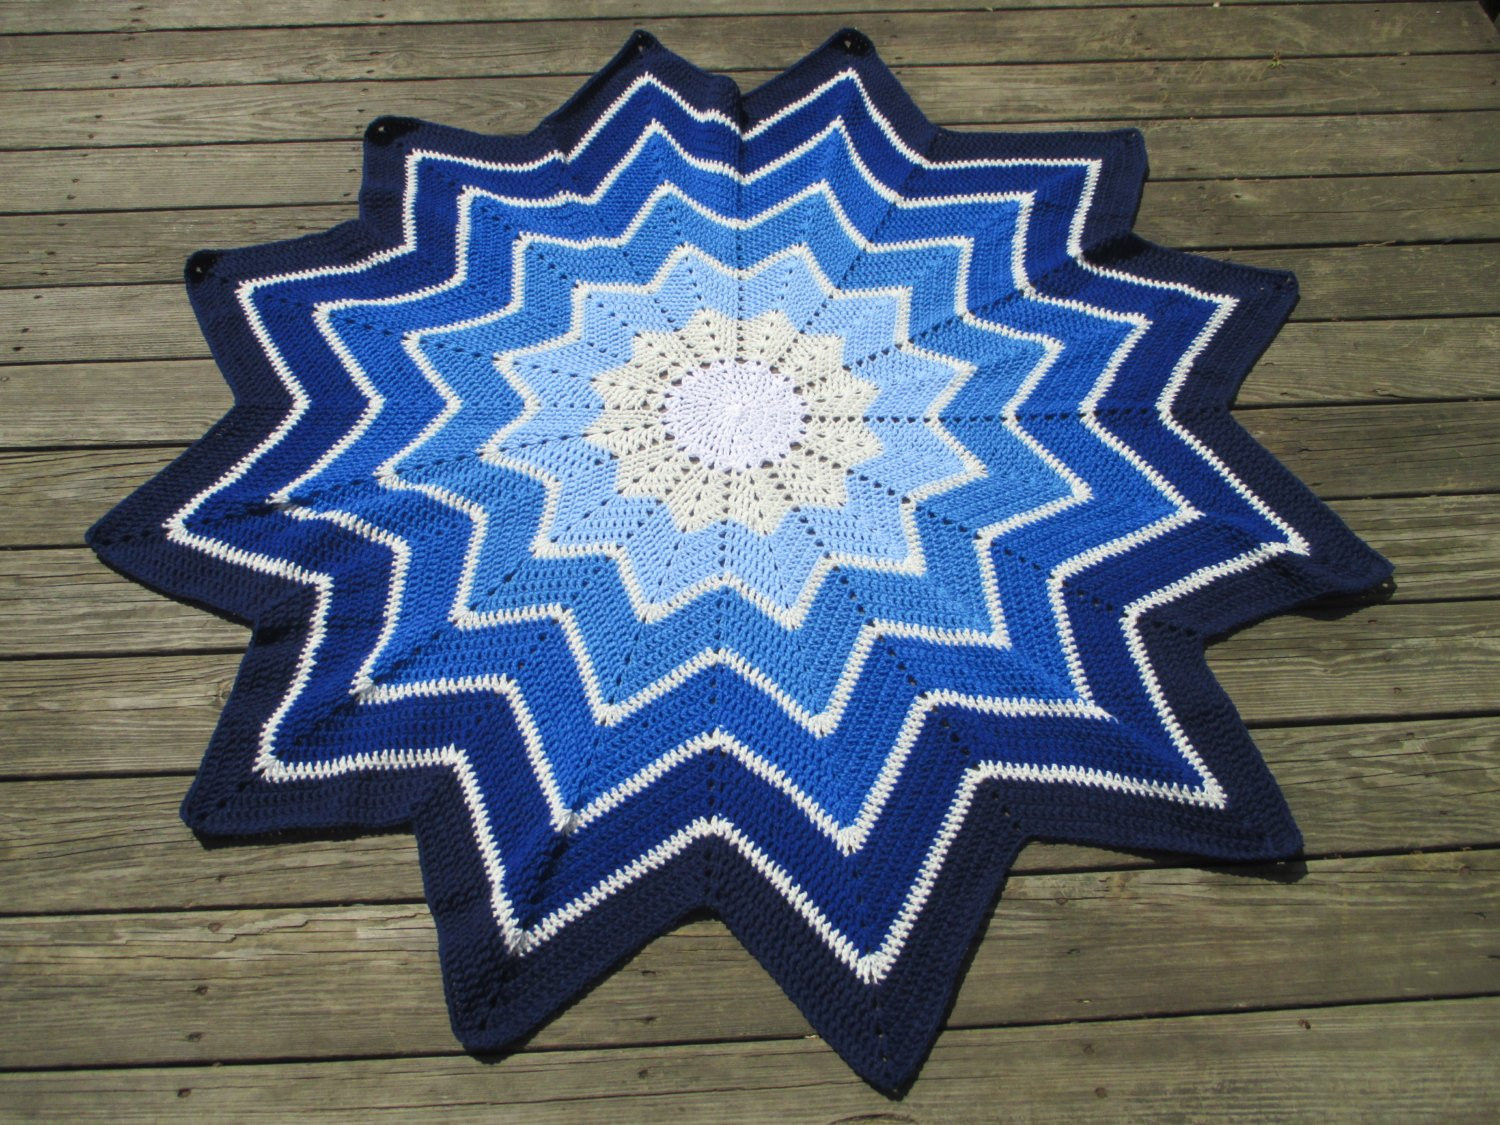 Beautiful Crochet 12 Point Star Afghan Blanket Throw Crochet Star Blanket Of Superb 49 Images Crochet Star Blanket